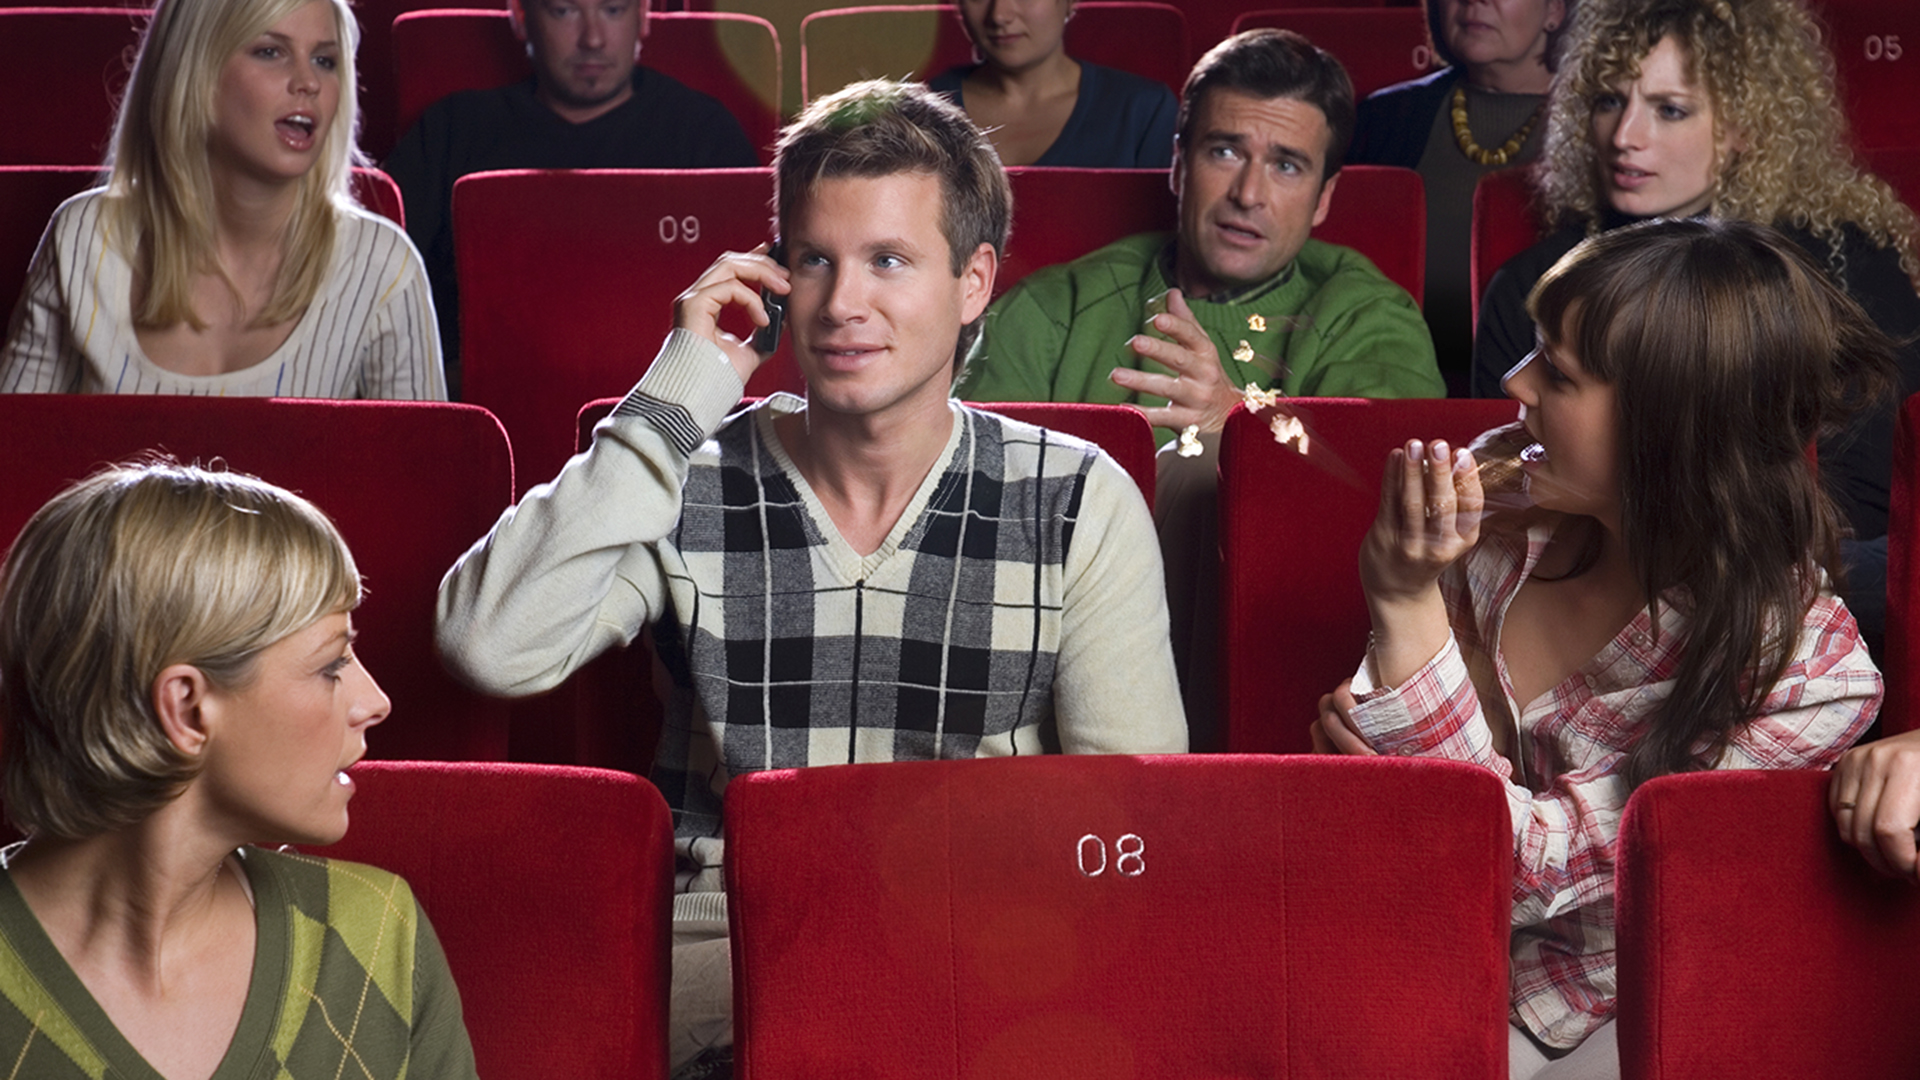 IMAGE: Man talking on cell phone in movie theater